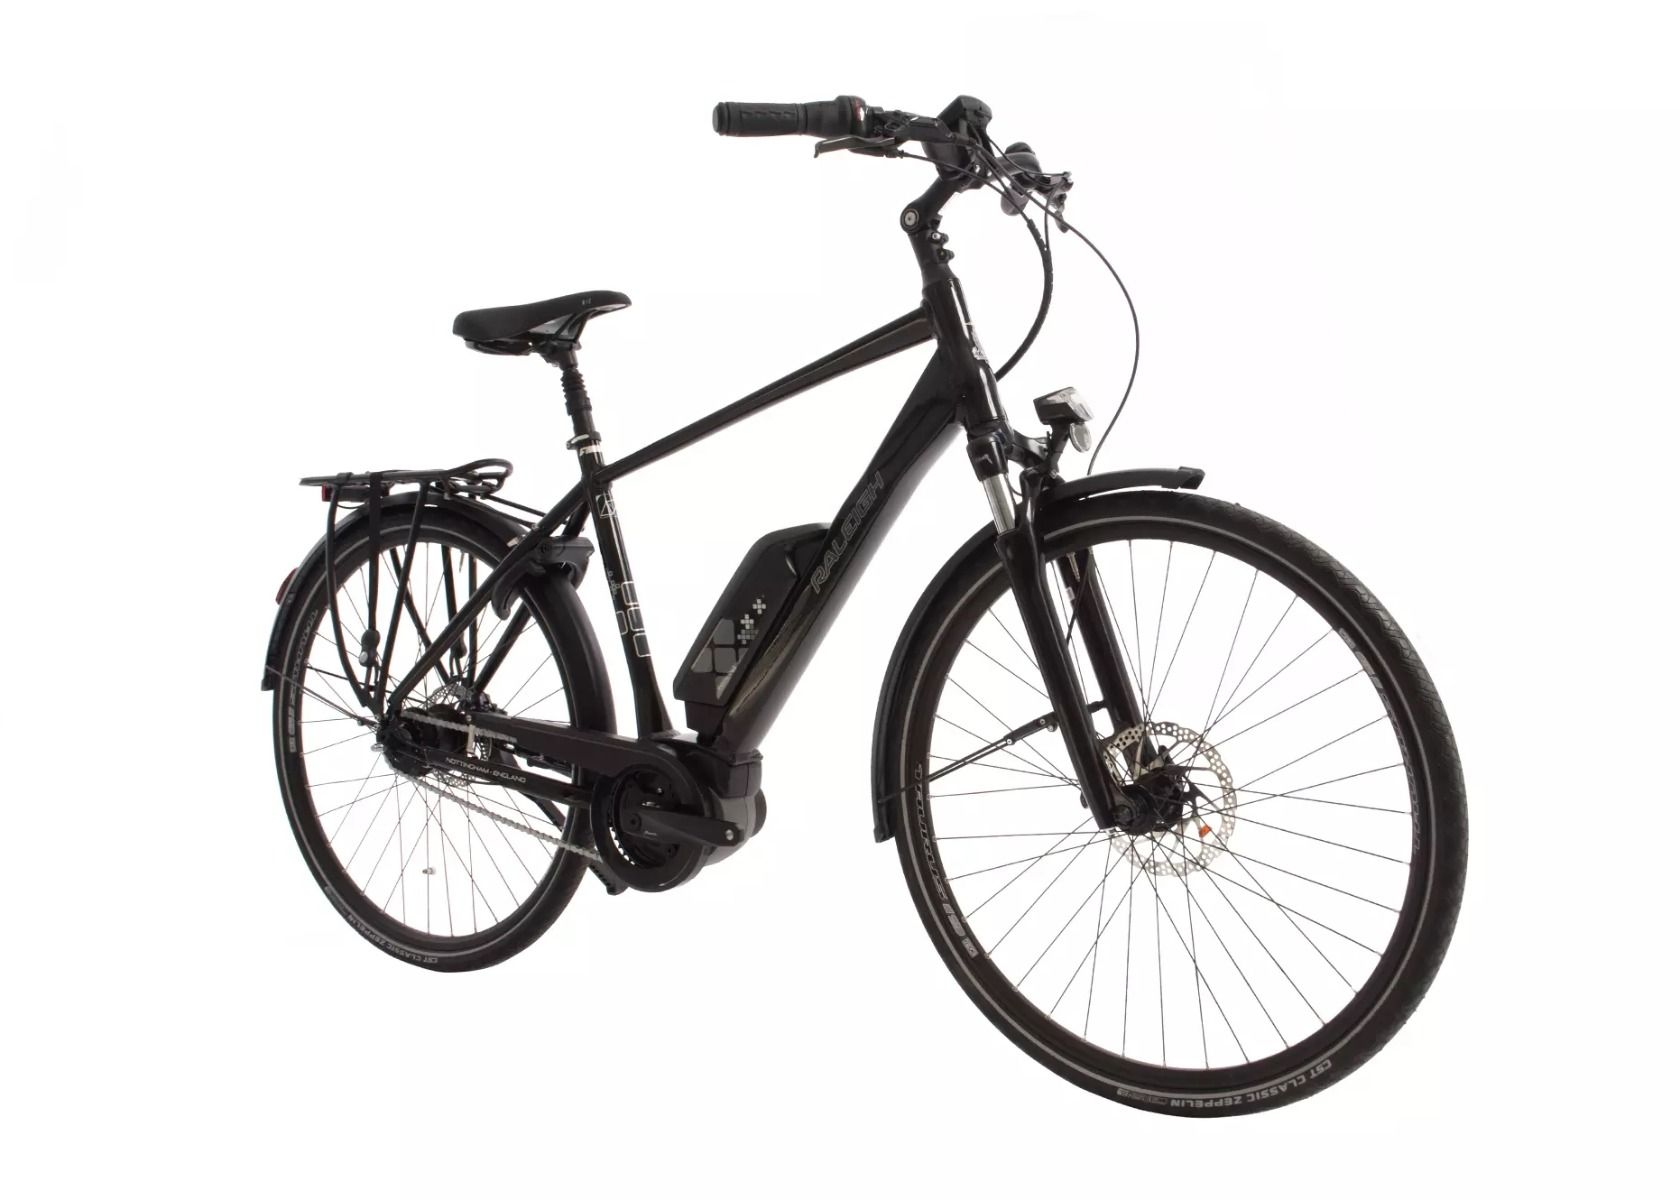 raleigh motus grand tour crossbar 2019 electric bike. Black Bedroom Furniture Sets. Home Design Ideas